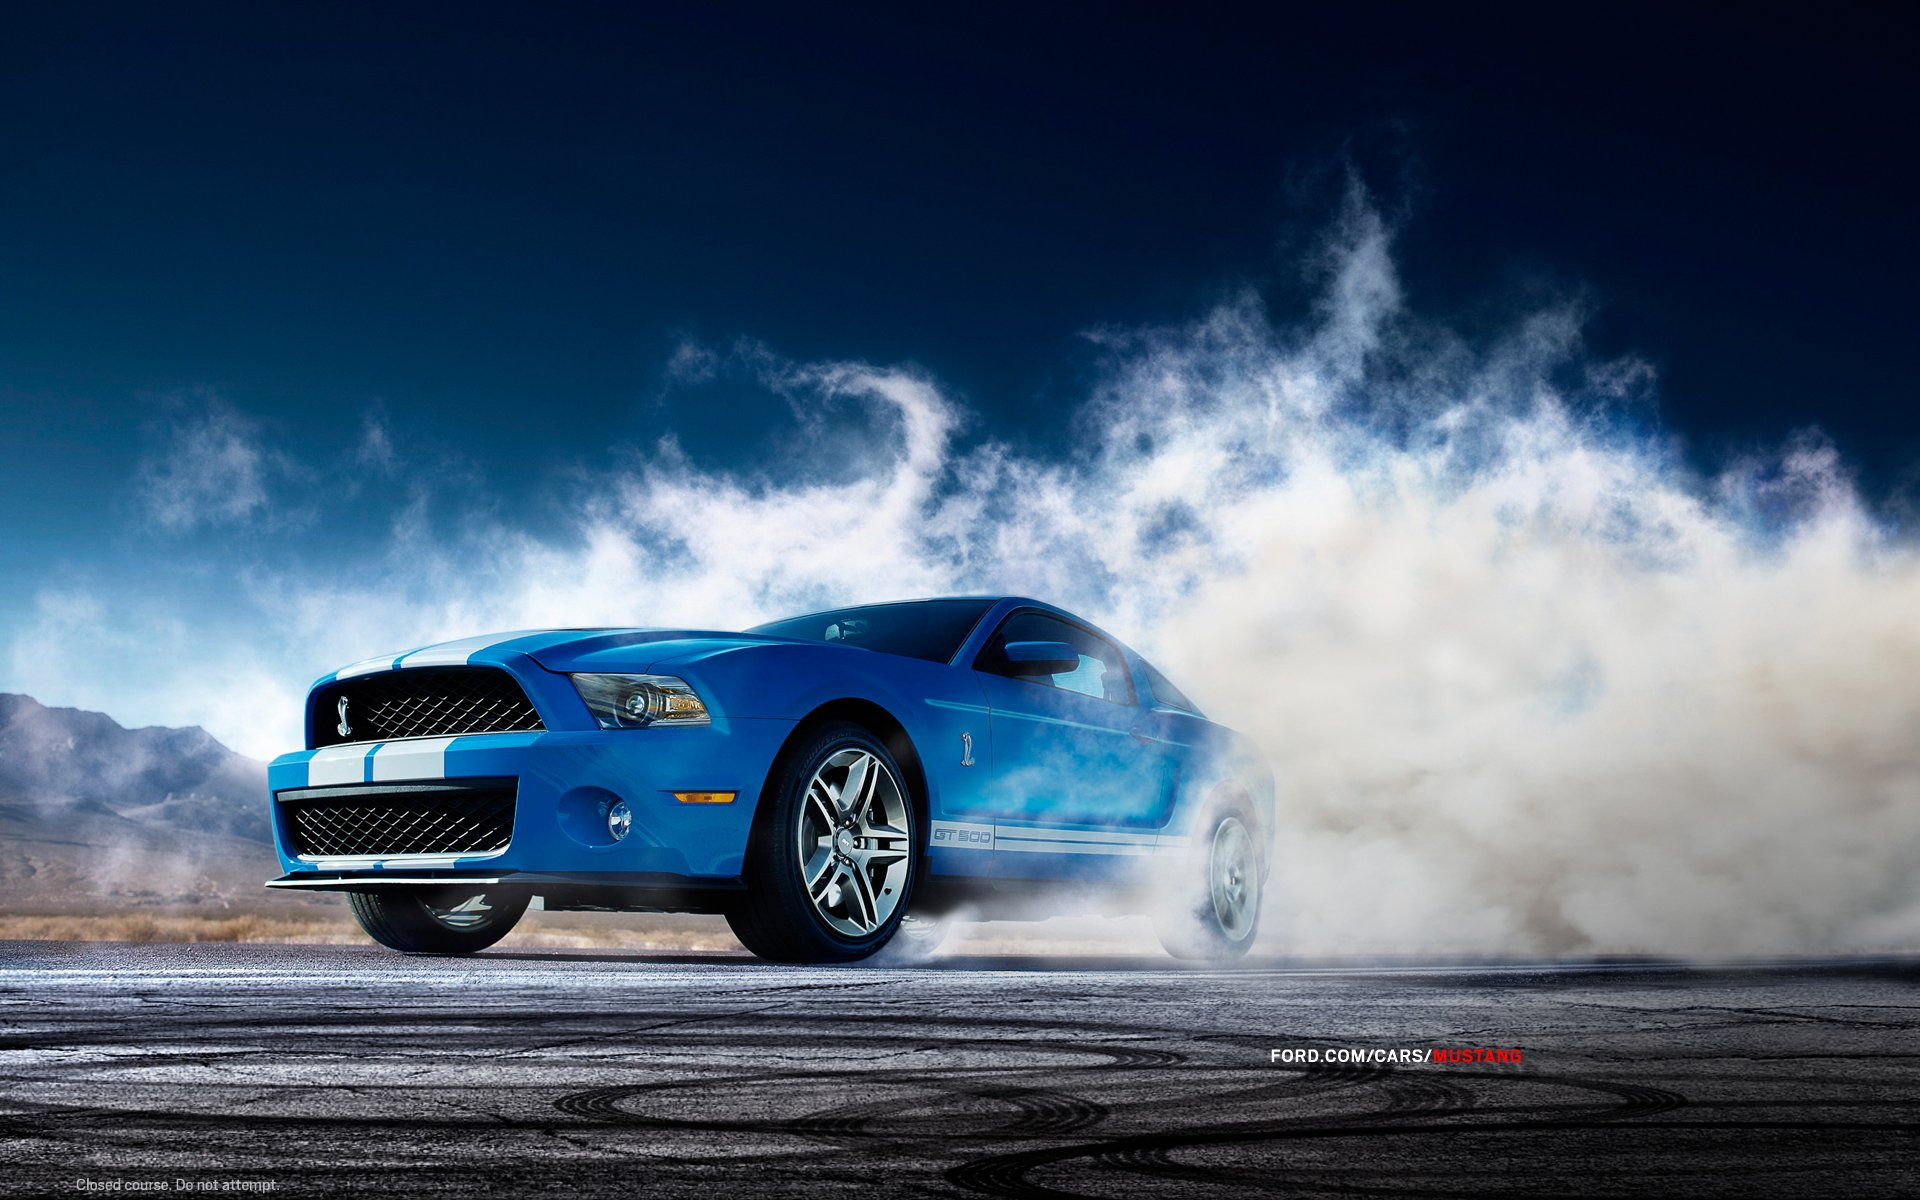 Best Collection of Mustang Wallpapers For Desktop Screens 1920x1200